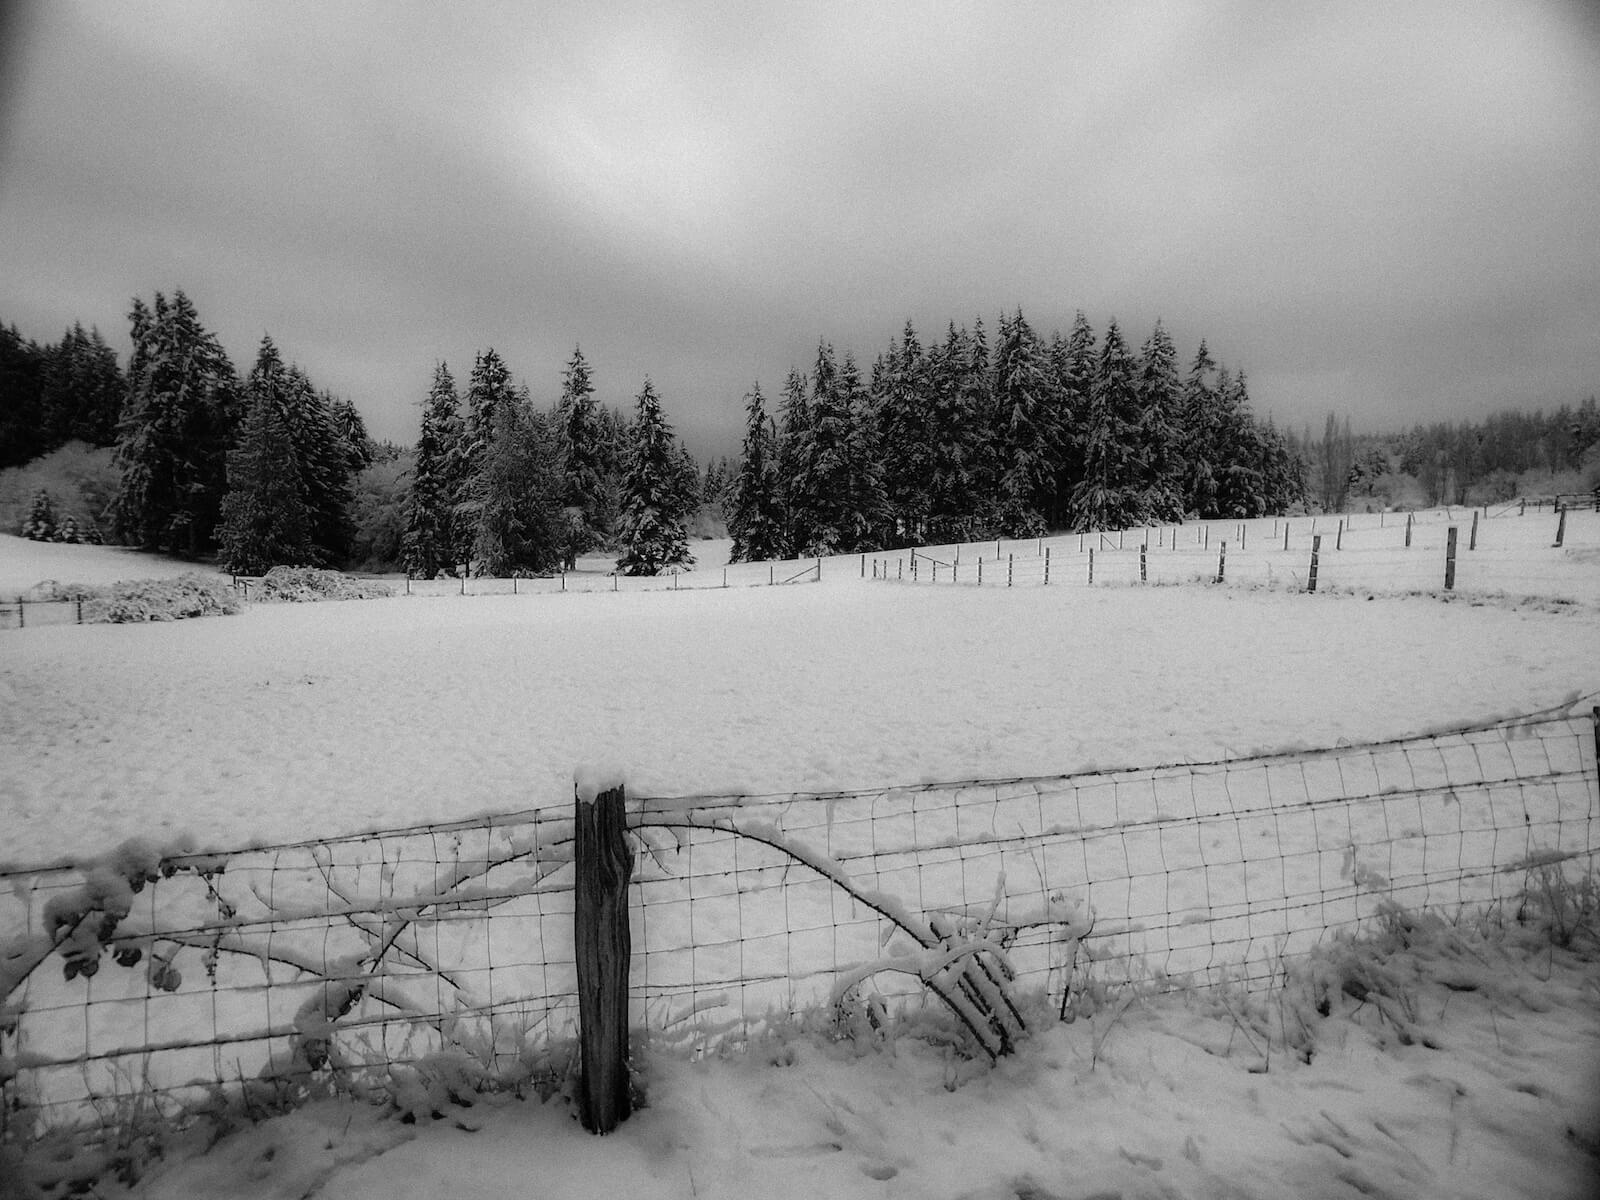 snowscape on whidbey island with trees